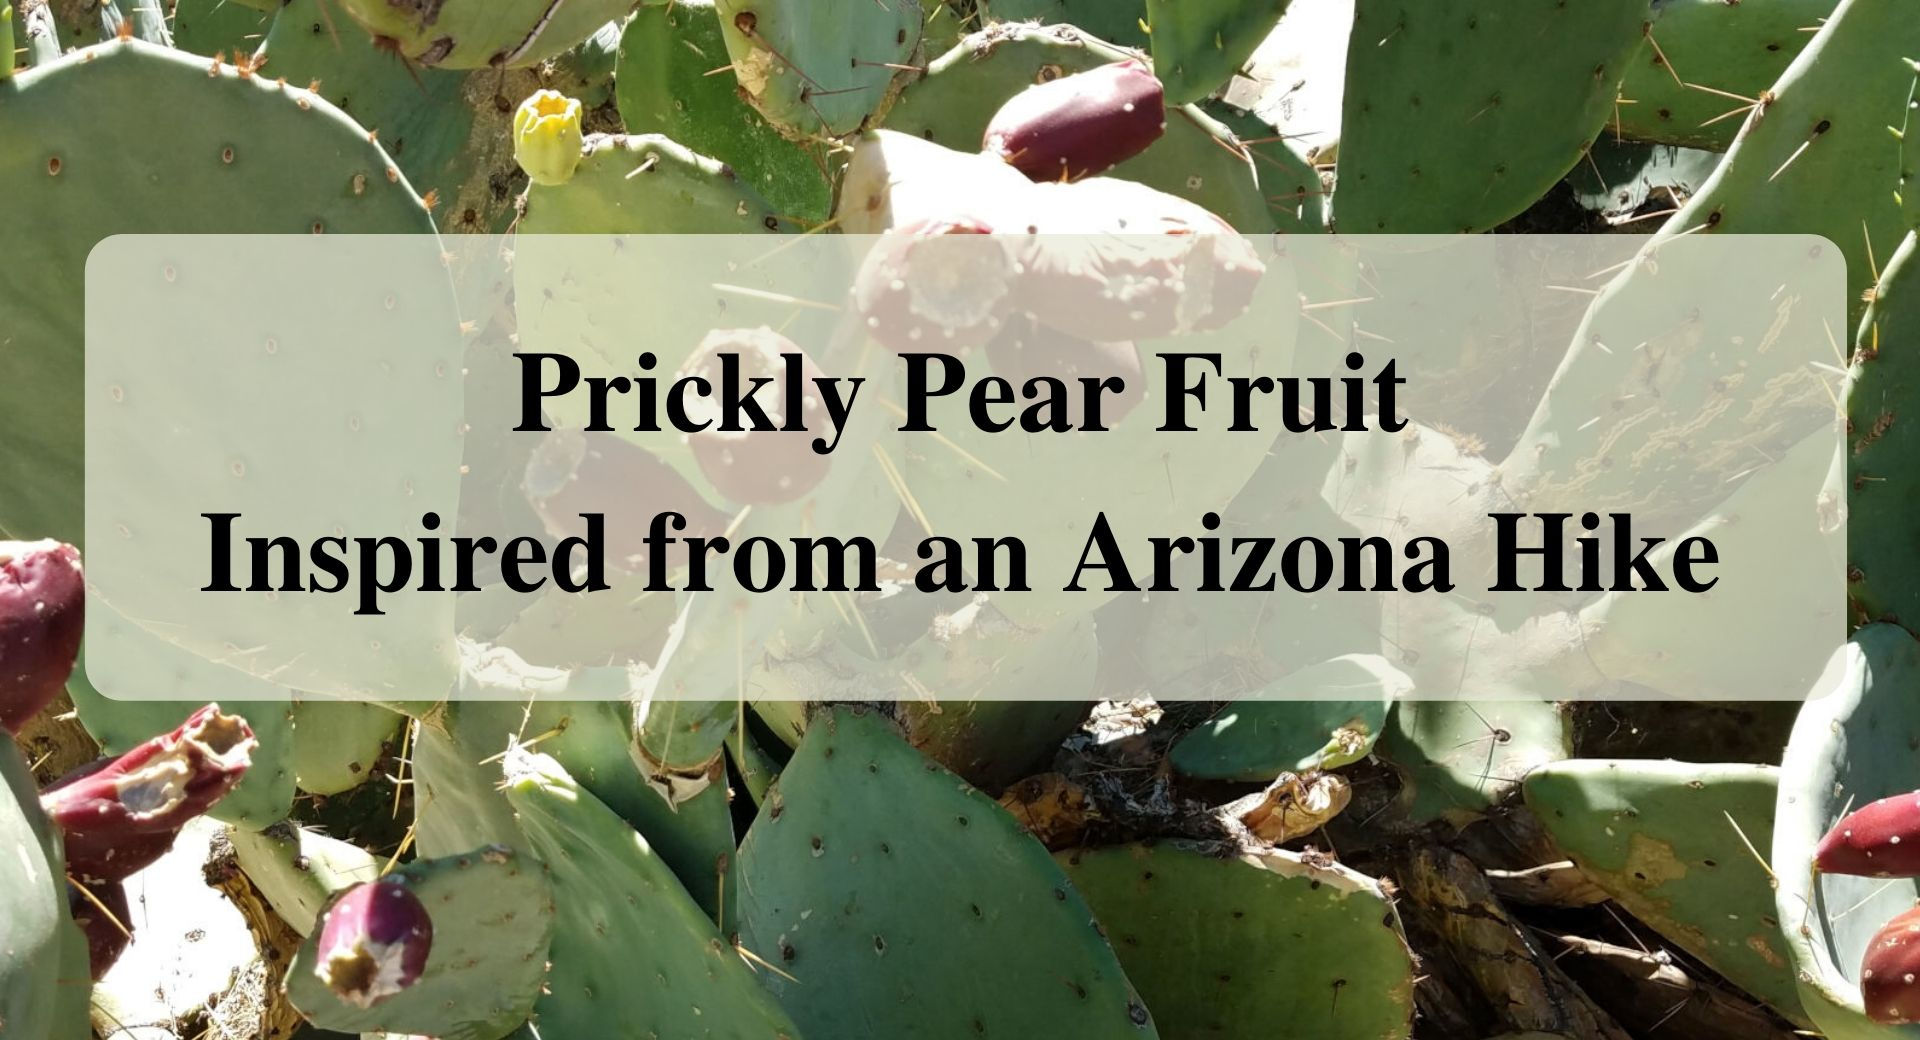 Prickly Pear Fruit Inspired from an Arizona Hike Forever sabbatical